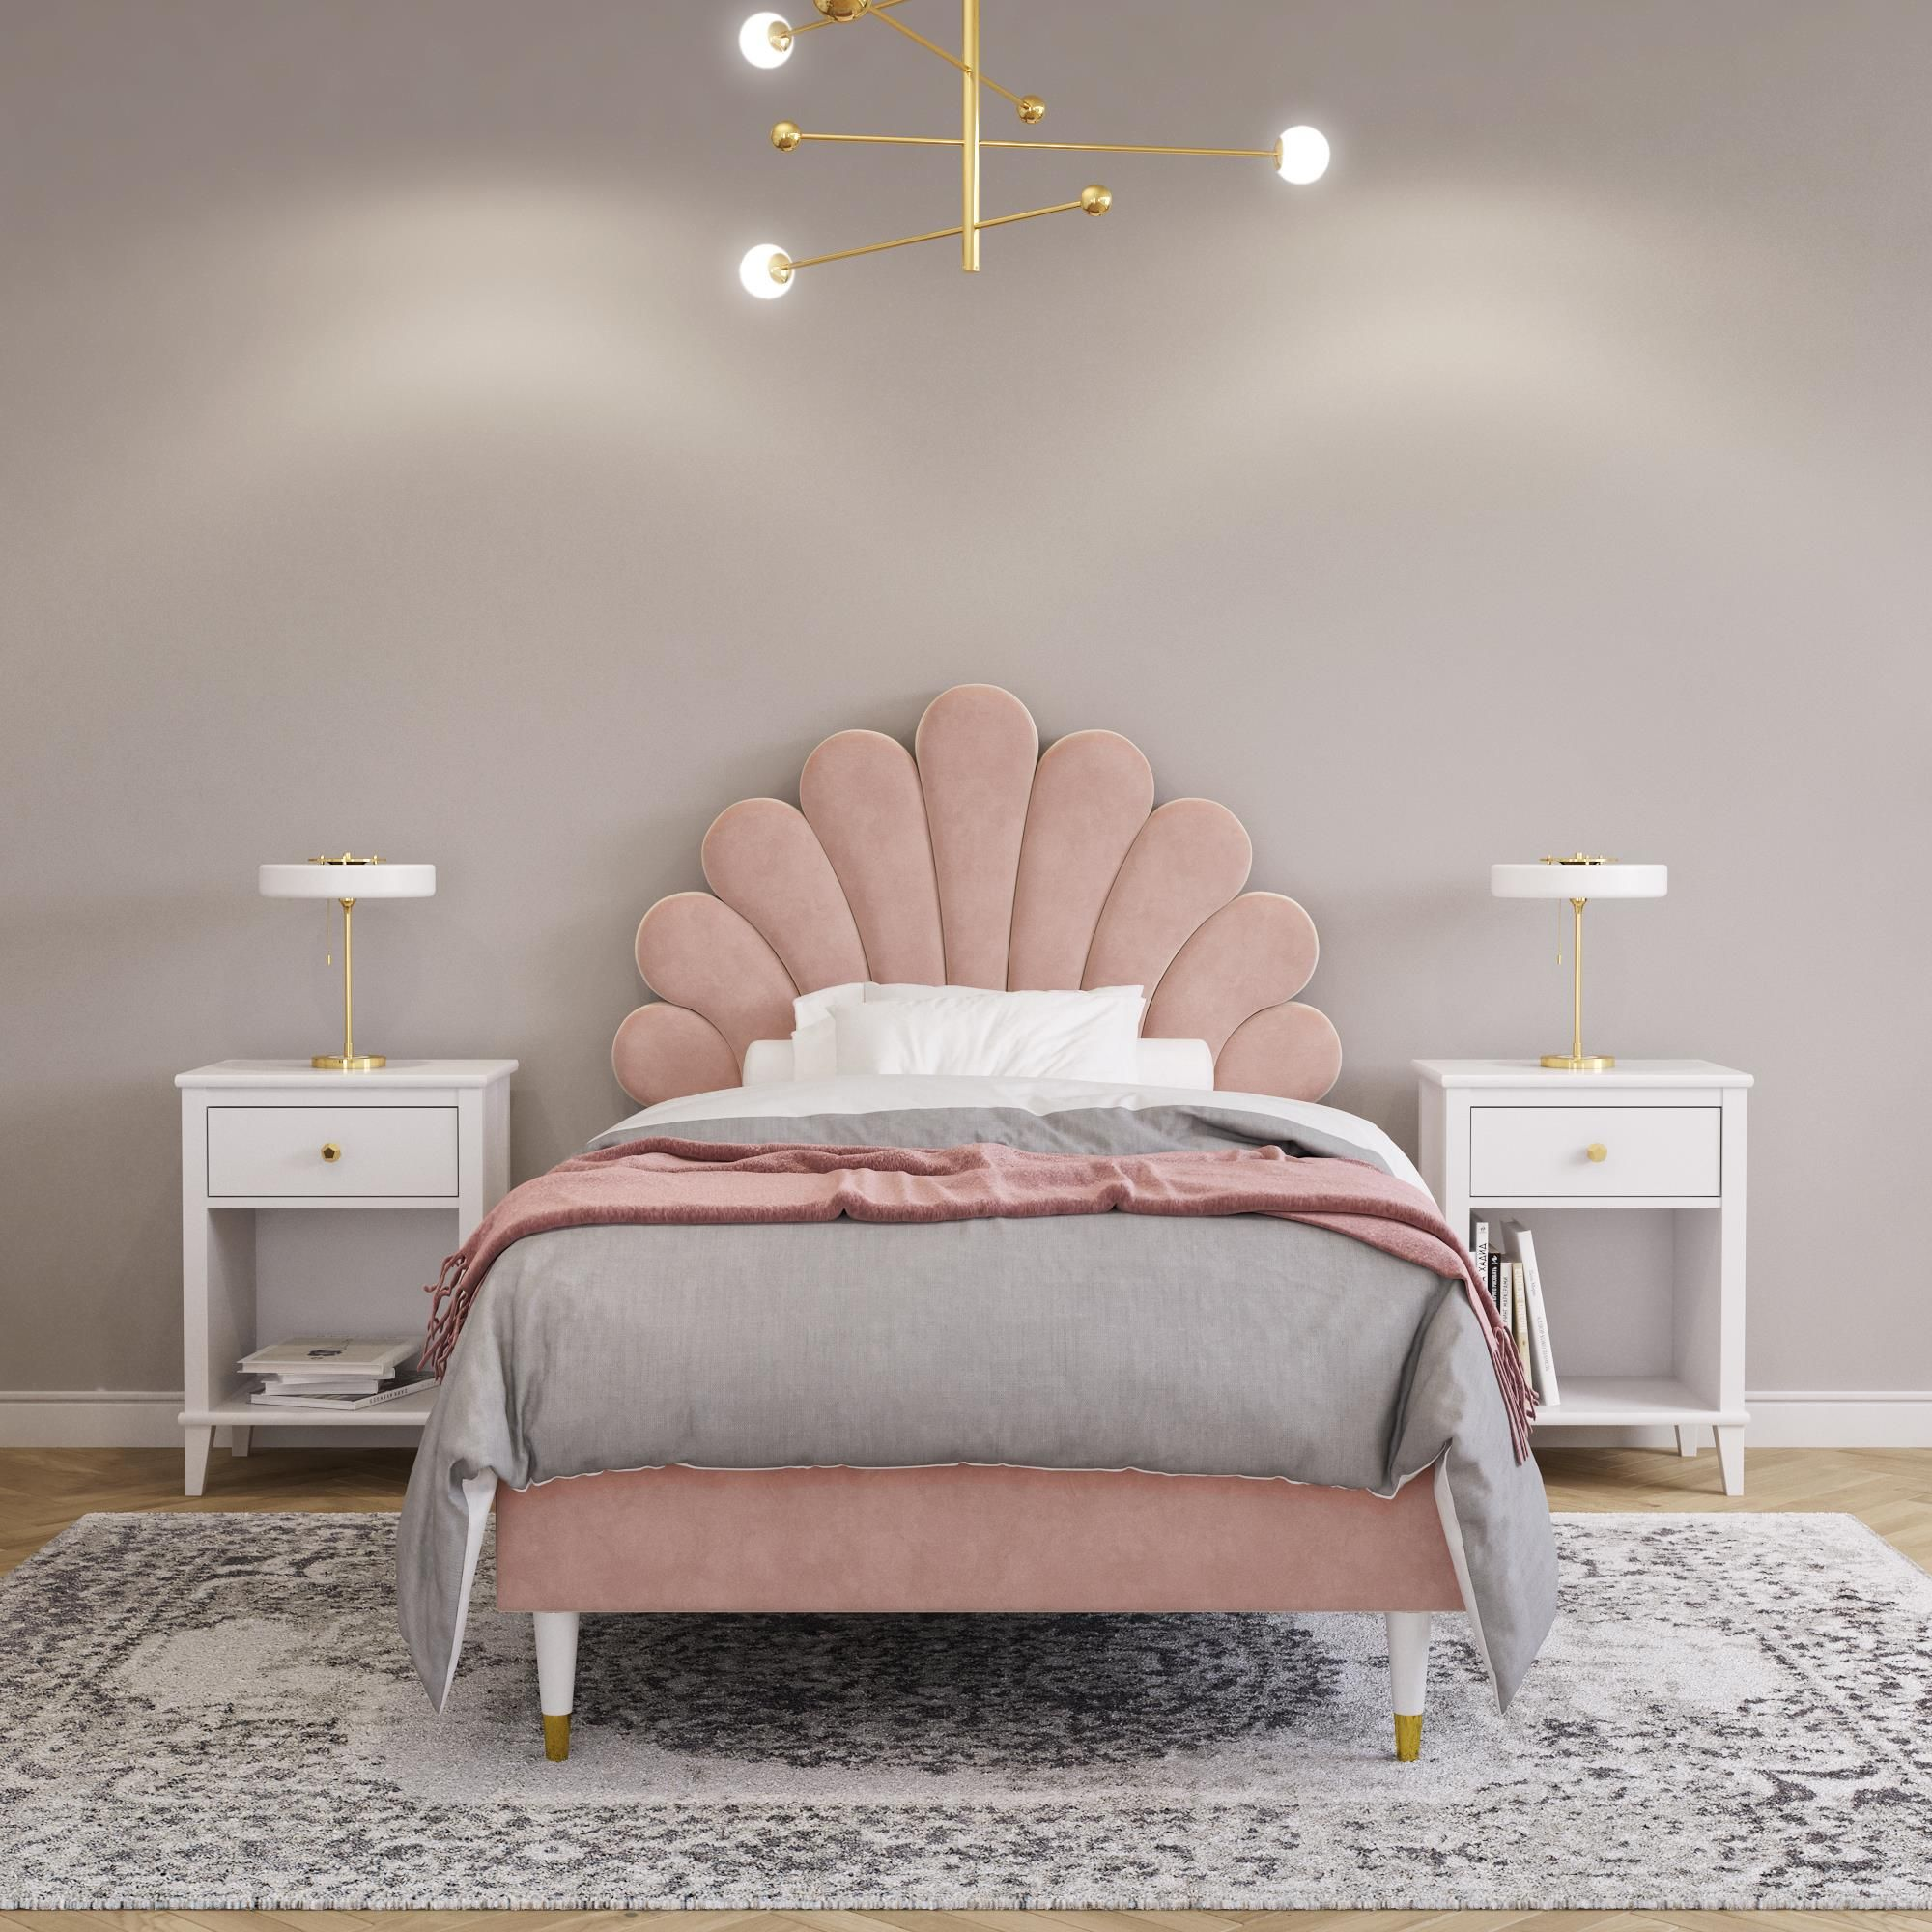 Pin by Little Seeds Kids on Collections Pink bedding